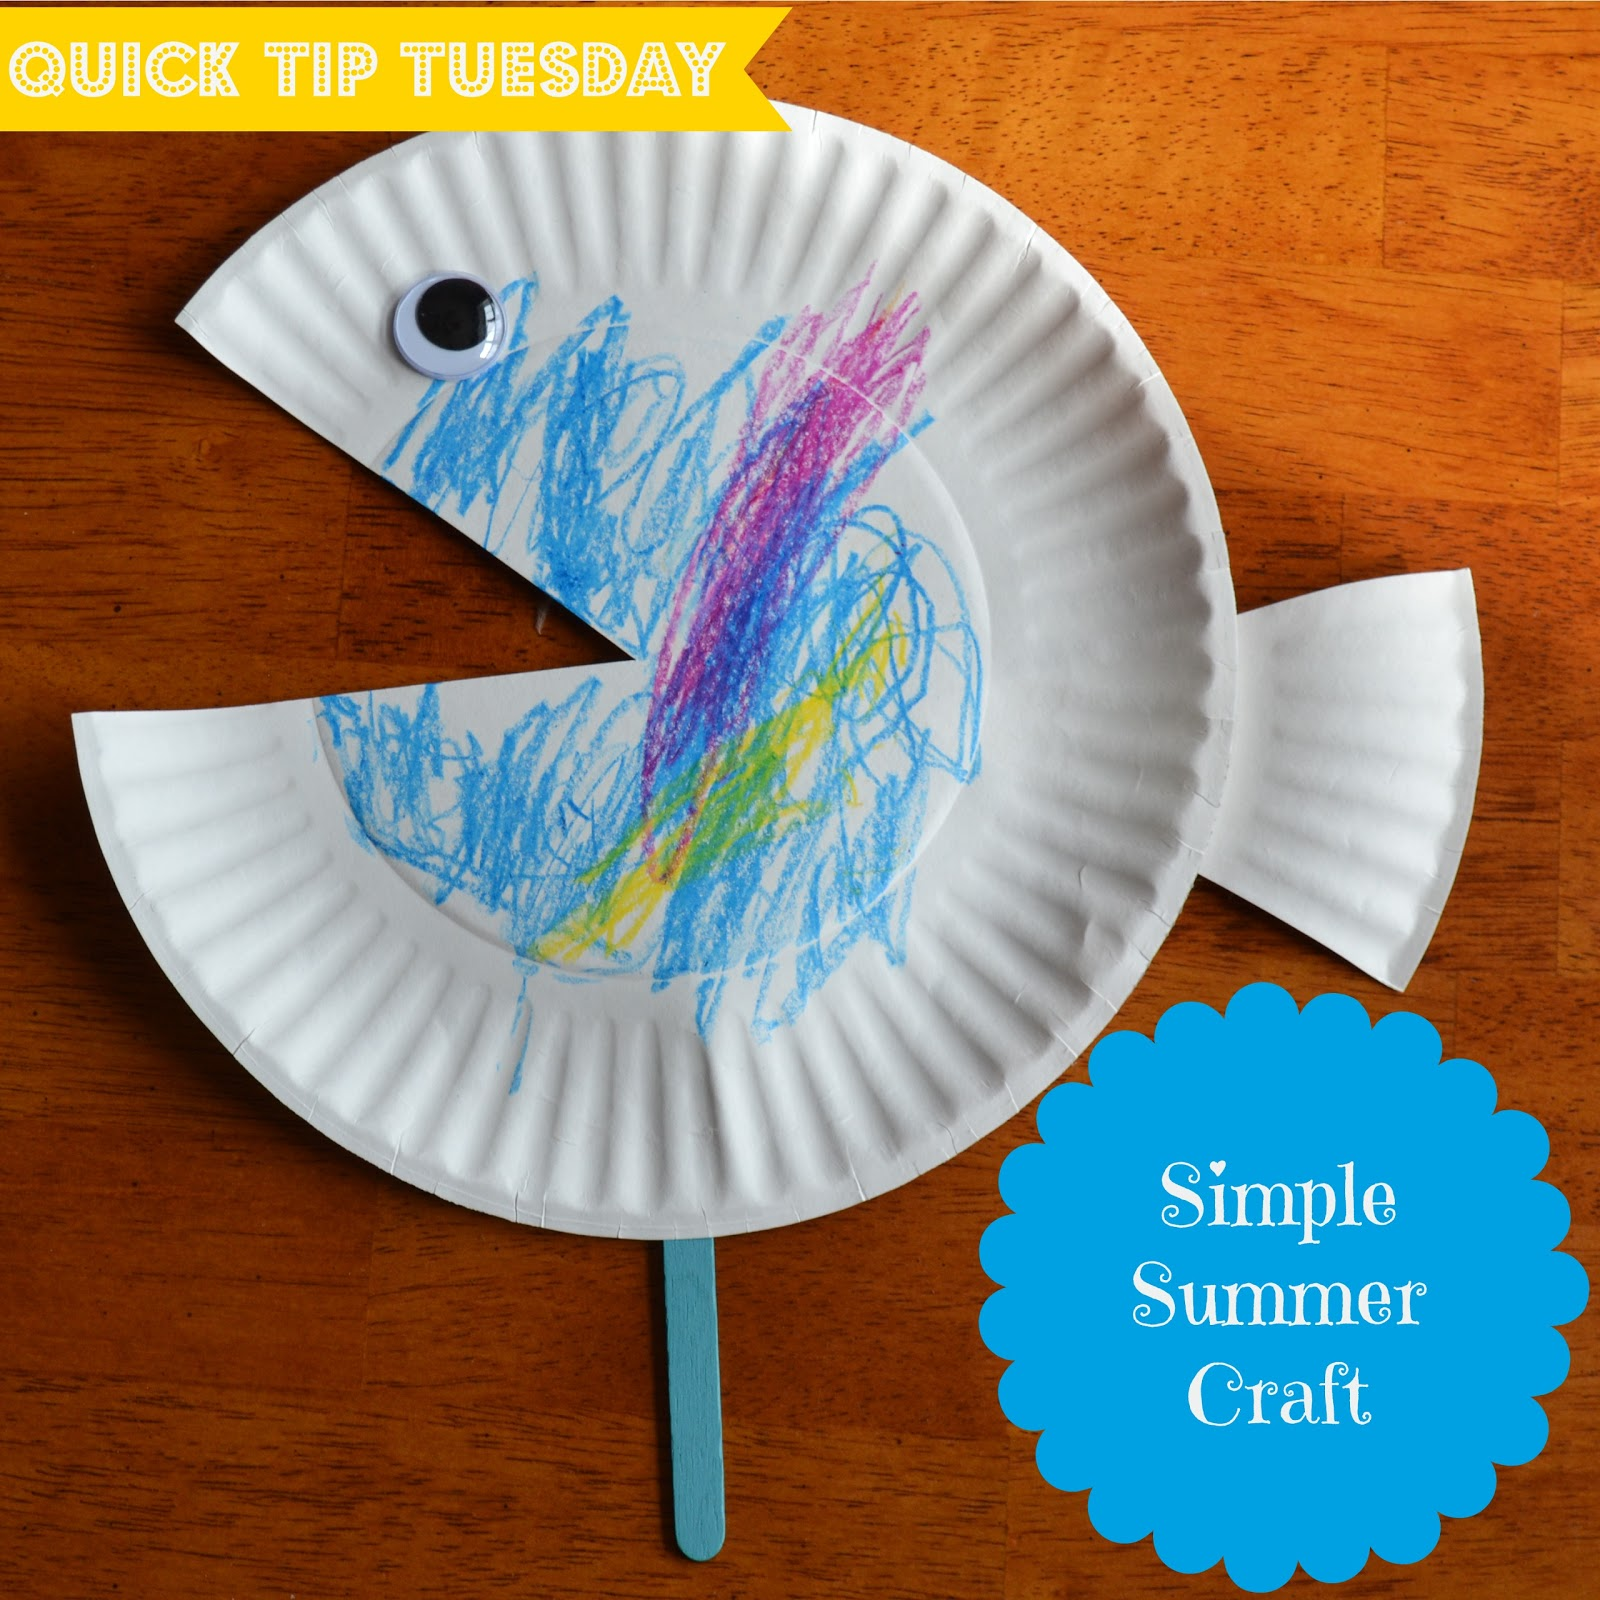 East coast mommy quick tip tuesday 5 simple summer craft Summer craft ideas for adults